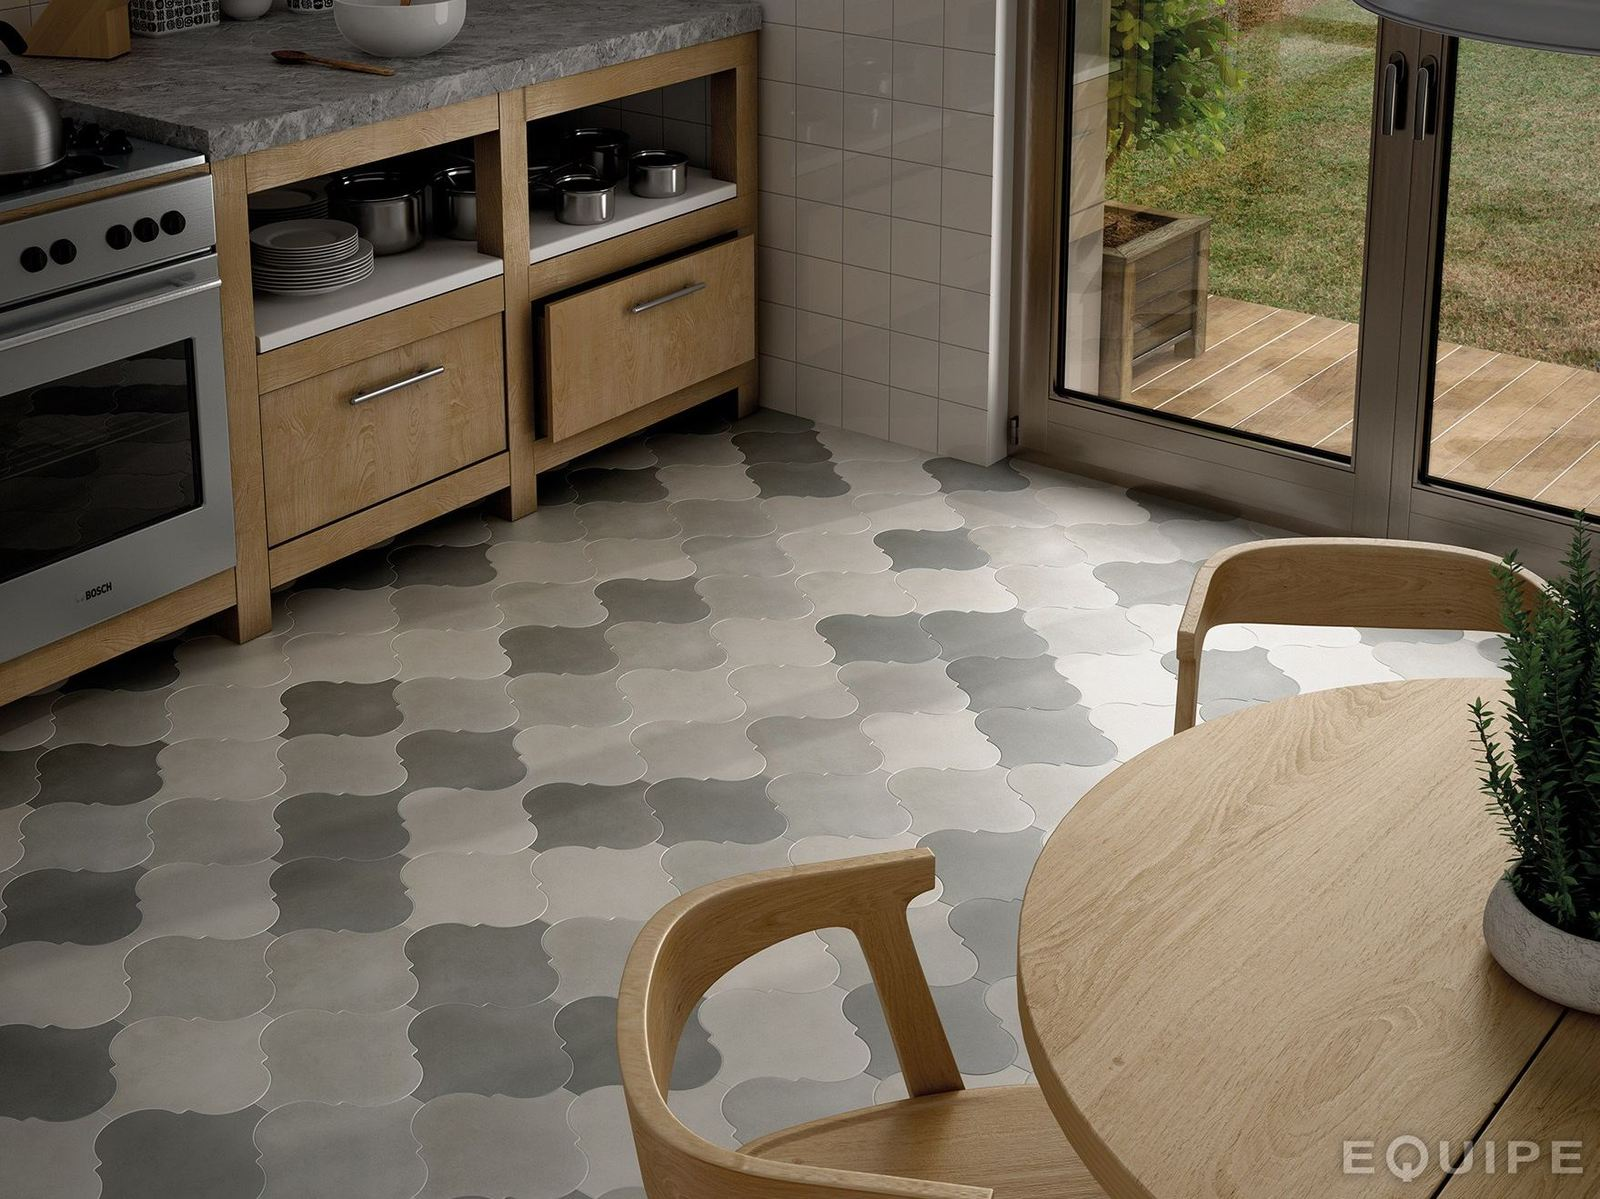 21 arabesque tile ideas for floor wall and backsplash kitchen floor tile ideas View in gallery arabesque tile floor kitchen grey 9